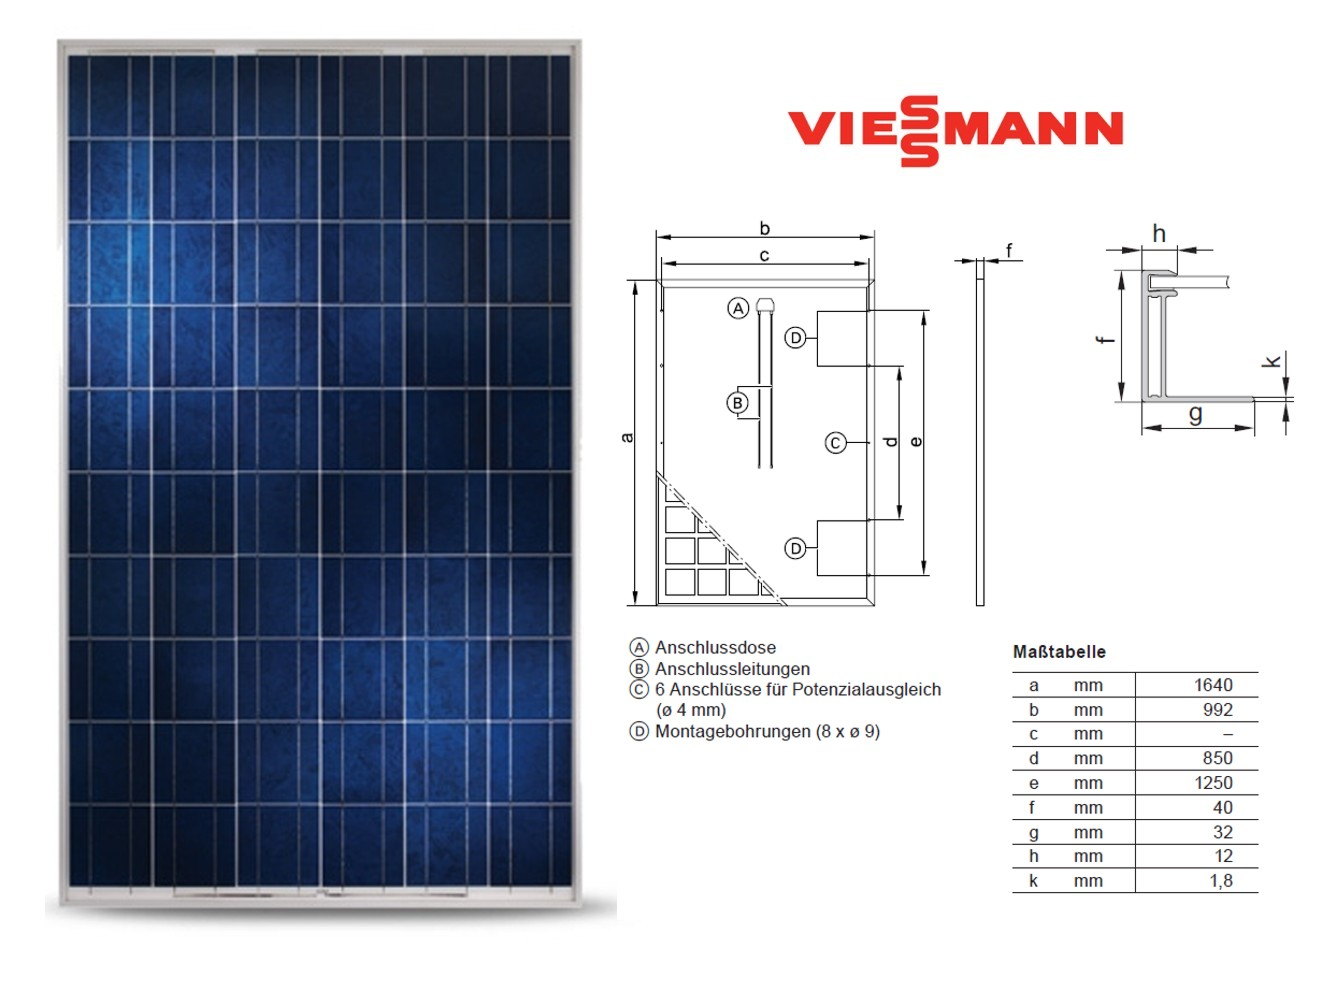 photovoltaikanlage 1 56kwp solaranlage pv solarbausatz 6. Black Bedroom Furniture Sets. Home Design Ideas